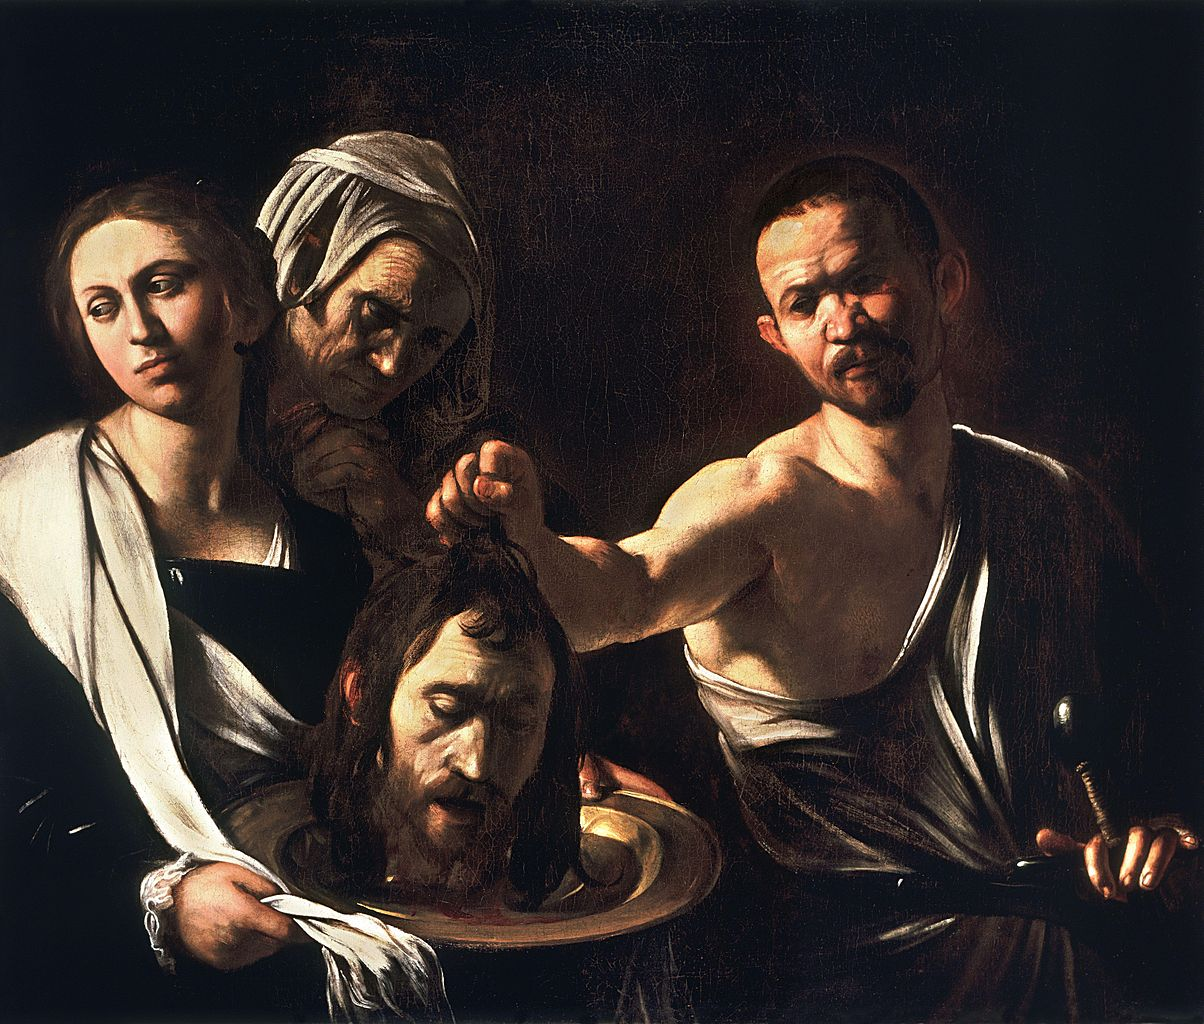 File:Salome with the Head of John the Baptist-Caravaggio (1610).jpg - Wikimedia Commons